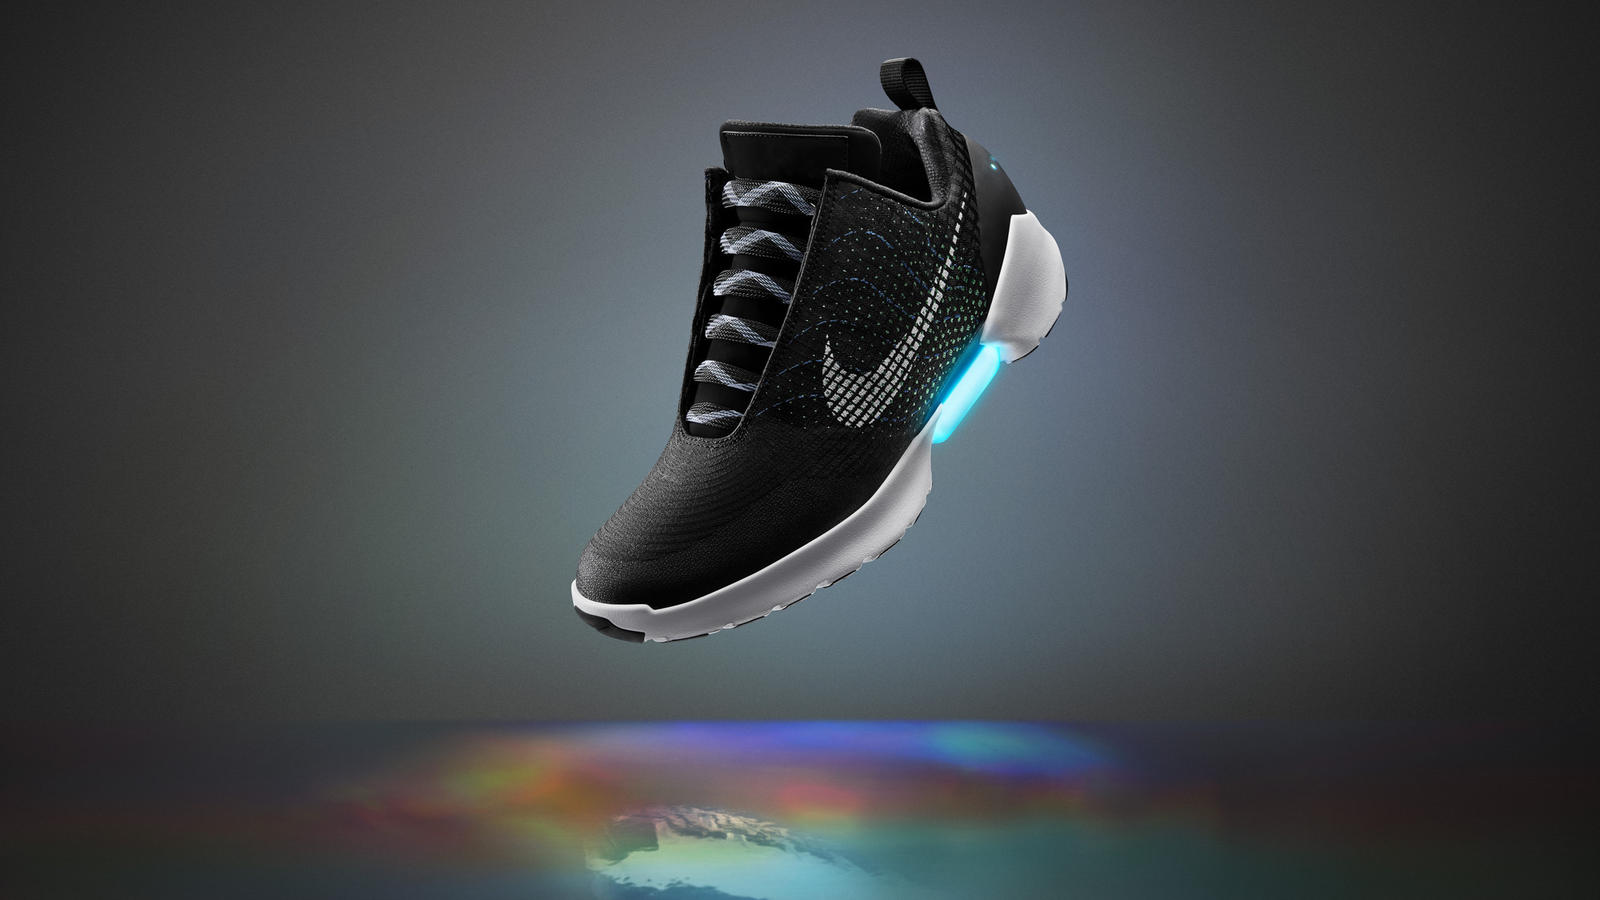 "Nike HyperAdapt 1.0 Manifests the Unimaginable ""Innovation at Nike is not about dreaming of tomorrow. It's about accelerating toward it,"" says Tinker Hatfield. ""We're able to anticipate the needs of athletes because we know them better than anybody. Sometimes, we deliver a reality before others have even begun to imagine it."" Welcome the Nike HyperAdapt 1.0, the first performance vehicle for Nike's latest platform breakthrough, adaptive lacing. The shoe translates deep research in digital, electrical and mechanical engineering into a product designed for movement. It challenges traditional understanding of fit, proposing an ultimate solution to individual idiosyncrasies in lacing and tension preference. Functional simplicity reduces a typical athlete concern, distraction. ""When you step in, your heel will hit a sensor and the system will automatically tighten,"" explains Tiffany Beers, Senior Innovator, NIKE, Inc., and the project's technical lead. ""Then there are two buttons on the side to tighten and loosen. You can adjust it until it's perfect."" For Hatfield, the innovation solves another enduring athlete-equipment quandary: the ability to make swift micro-adjustments. Undue pressure caused by tight tying and slippage resulting from loose laces are now relics of the past. Precise, consistent, personalized lockdown can now be manually adjusted on the fly. ""That's an important step, because feet undergo an incredible amount of stress during competition,"" he says. Beers began pondering the mechanics shortly after meeting Hatfield, who dreamed of making adaptive lacing a reality. He asked if she wanted to figure it out — not a replication of a preexisting idea but as ""the first baby step to get to a more sophisticated place."" The project caught the attention of a third collaborator, NIKE, Inc. President & CEO Mark Parker, who helped guide the design. The process saw Beers brainstorming with a group of engineers intent on testing her theories. They first came up with a snowboard boot featuring an external generator. While far from the ideal, it was the first of a series of strides toward Beers and Hatfield's original goal: to embed the technical components into such a small space that the design moves with the body and absorbs the same force the athlete is facing. Through 2013, Hatfield and Beers spearheaded a number of new systems, a pool of prototypes and several trials, arriving at an underfoot-lacing mechanism. In April 2015, Beers was tasked with making a self-lacing Nike Mag to celebrate the icon's true fictional release date of October 21. The final product quietly debuted Nike's new adaptive technology. Shortly after, the completion of the more technical, sport version they'd originally conceived, the Nike HyperAdapt 1.0, confirmed the strength of the apparatus. ""It's a platform,"" Beers says, ""something that helps envision a world in which product changes as the athlete changes."" The potential of adaptive lacing for the athlete is huge, Hatfield adds, as it would provide tailored-to-the-moment custom fit. ""It is amazing to consider a shoe that senses what the body needs in real-time. That eliminates a multitude of distractions, including mental attrition, and thus truly benefits performance."" He concludes, ""Wouldn't it be great if a shoe, in the future, could sense when you needed to have it tighter or looser? Could it take you even tighter than you'd normally go if it senses you really need extra snugness in a quick maneuver? That's where we're headed. In the future, product will come alive."" In short, the Nike HyperAdapt 1.0 is the first step into the future of adaptive performance. It's currently manual (i.e., athlete controlled) but it makes feasible the once-fantastic concept of an automated, nearly symbiotic relationship between the foot and shoe. The Nike HyperAdapt 1.0 will be available ONLY to members of Nike+ beginning Holiday 2016 in three colors. To become a Nike+ member and sign up for notifications about the Nike HyperAdapt 1.0, go to Nike.com."